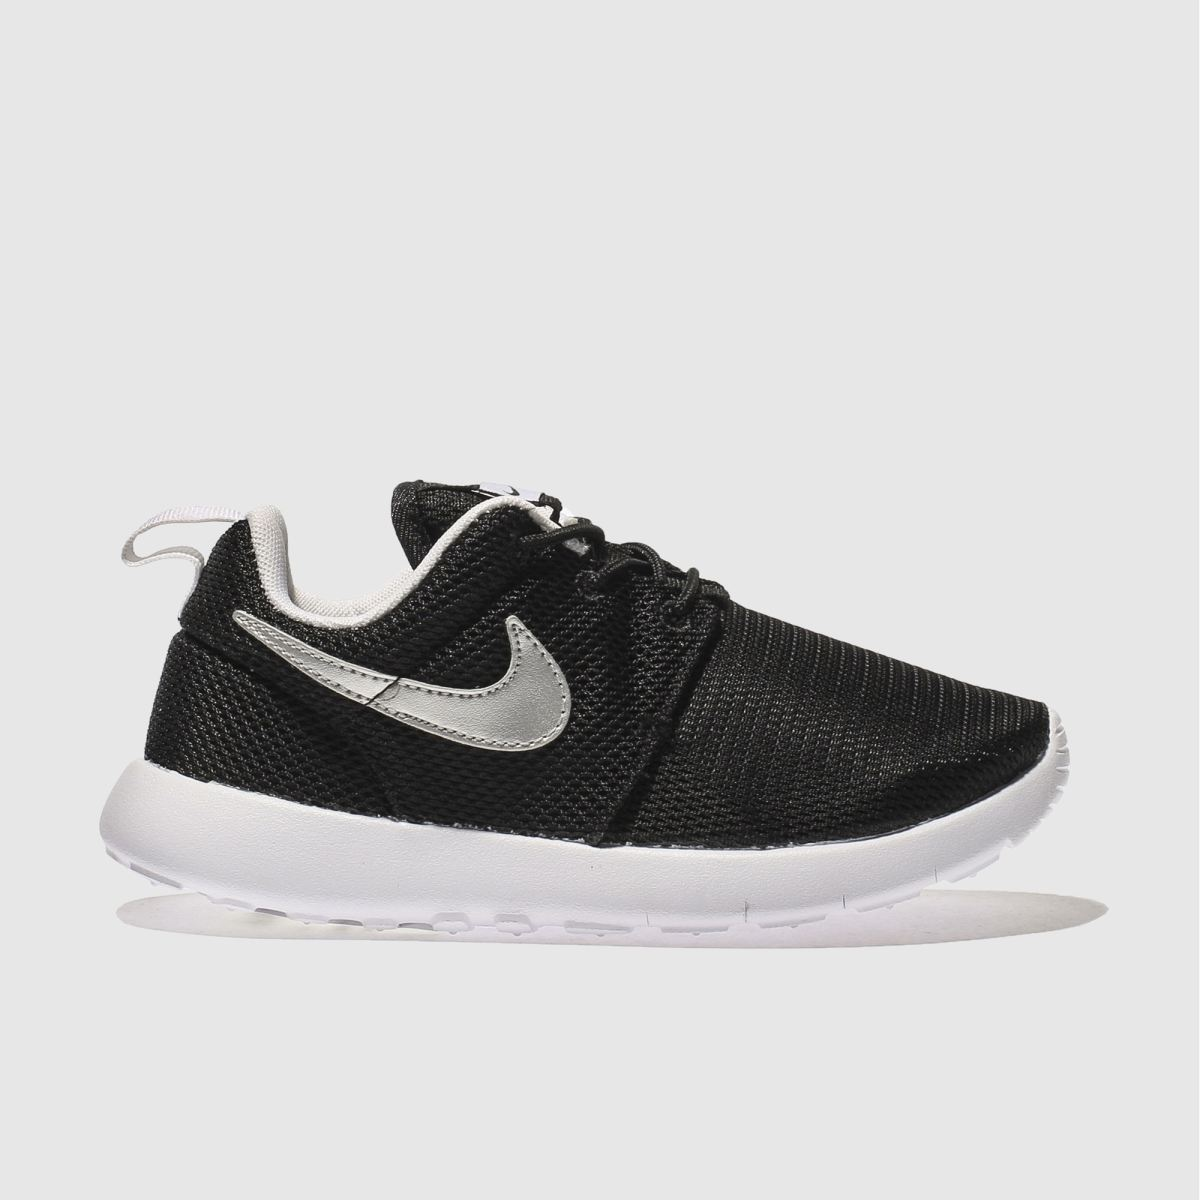 save off f458d cce9e Nike Roshe Run Trainers   Nike Shoes for Men, Women   Kids   schuh